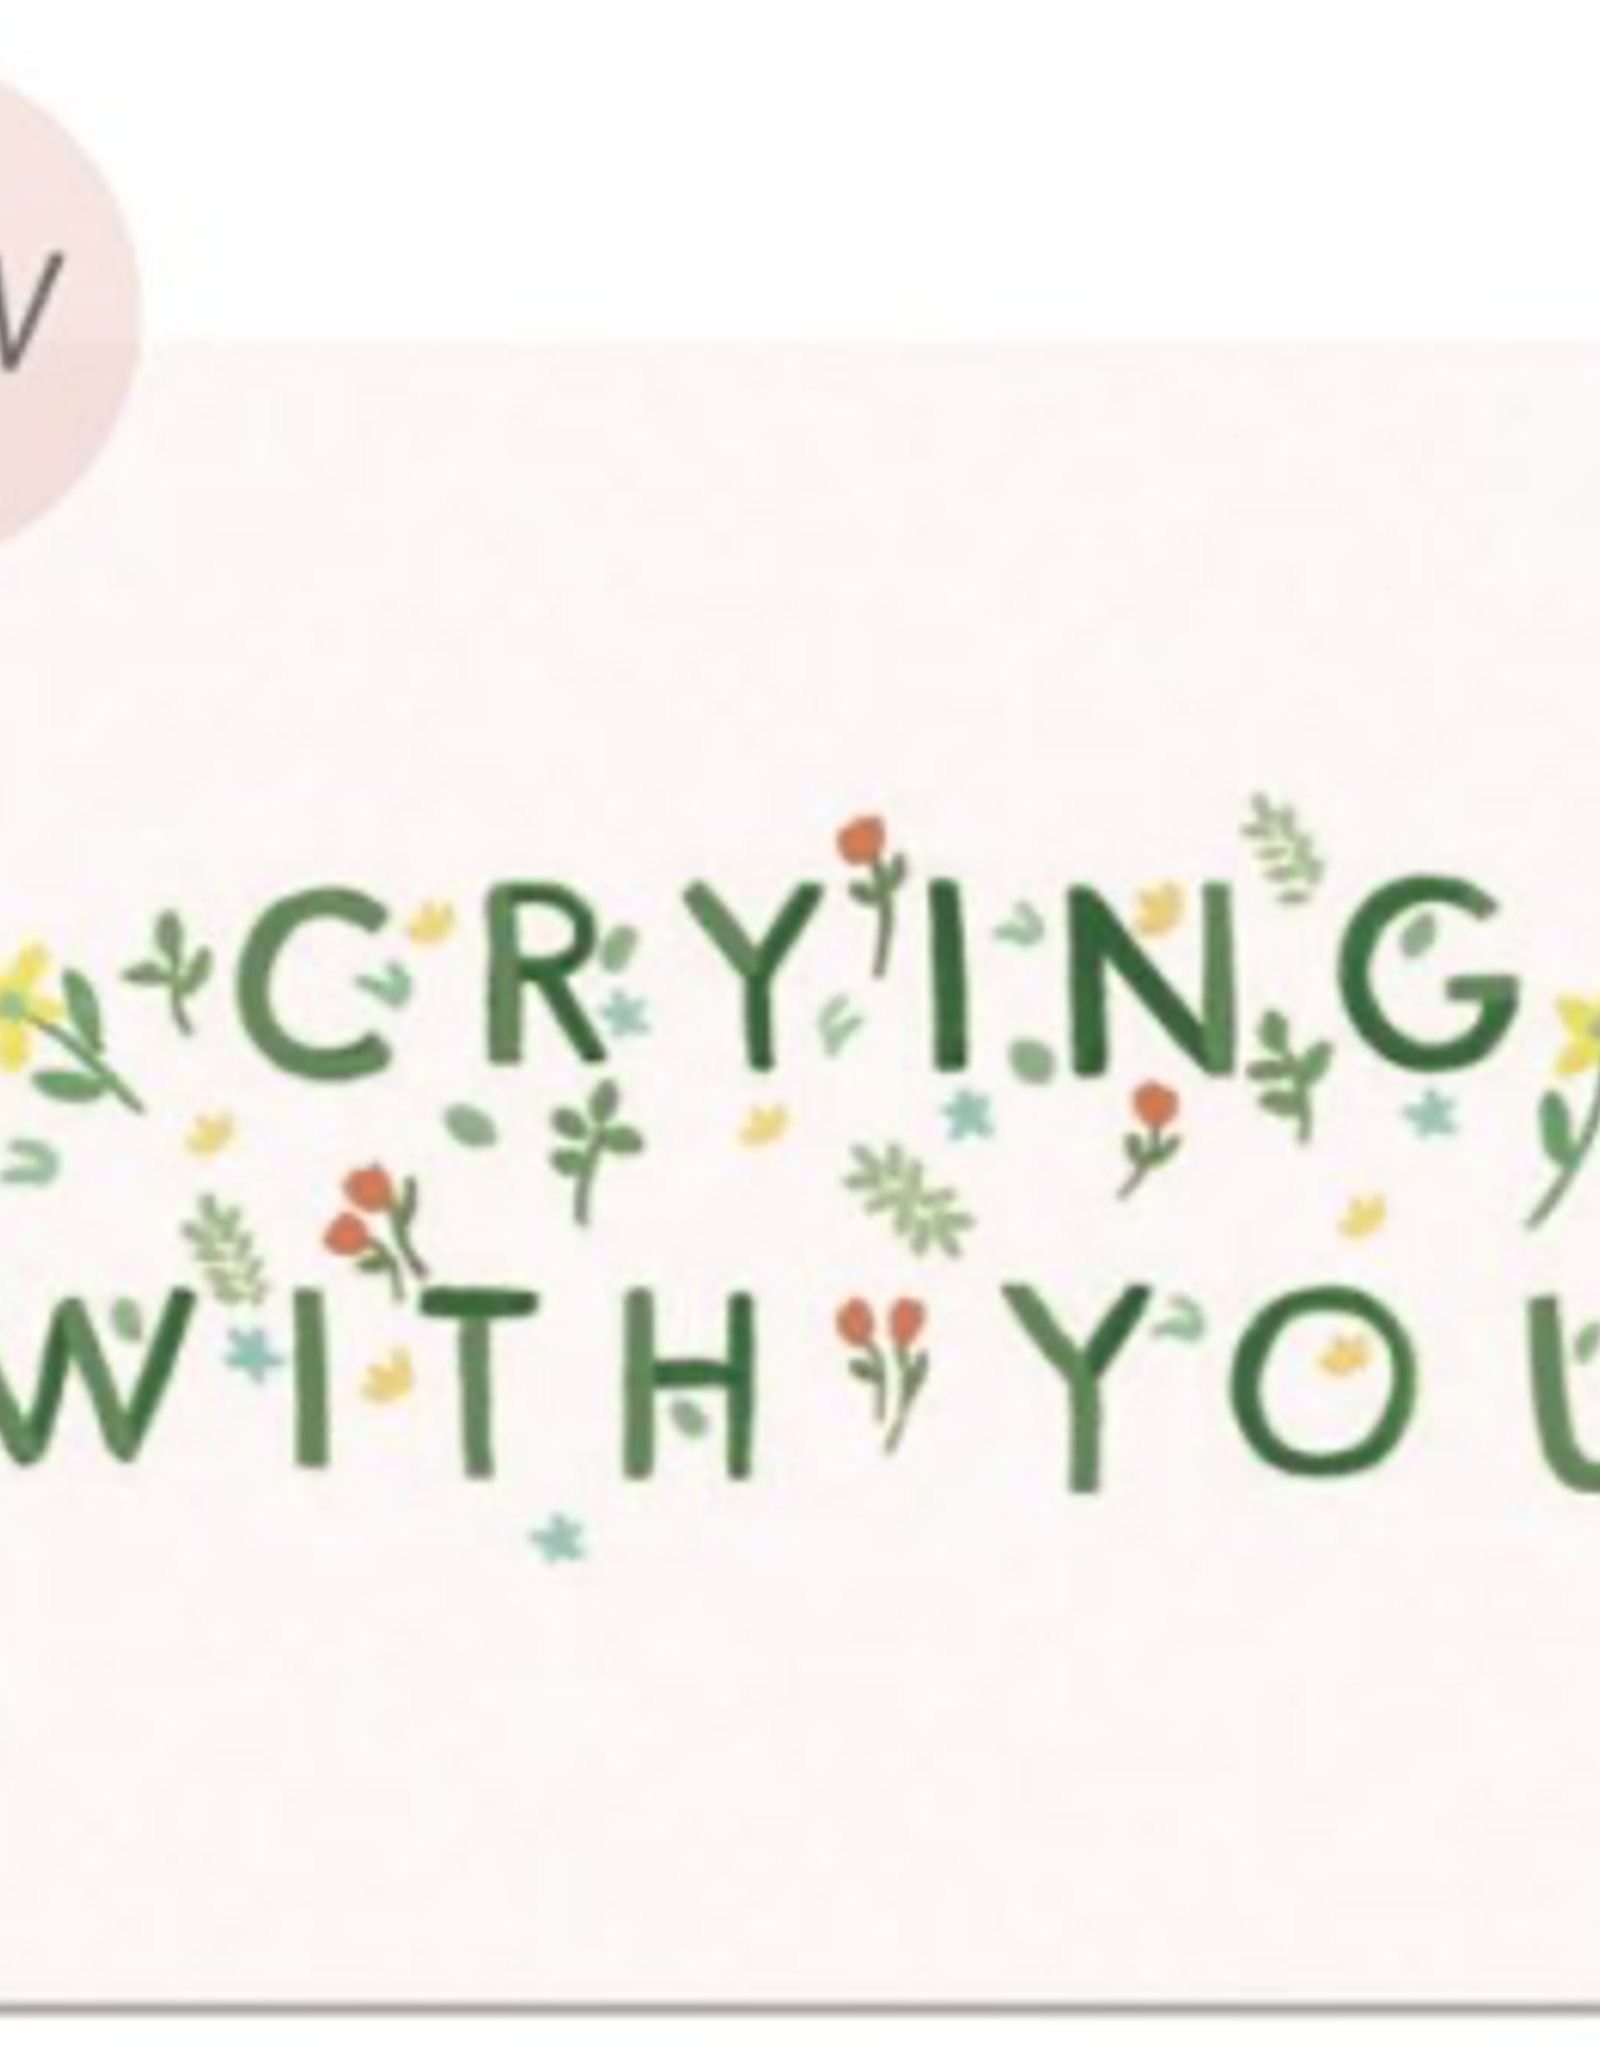 Crying With You